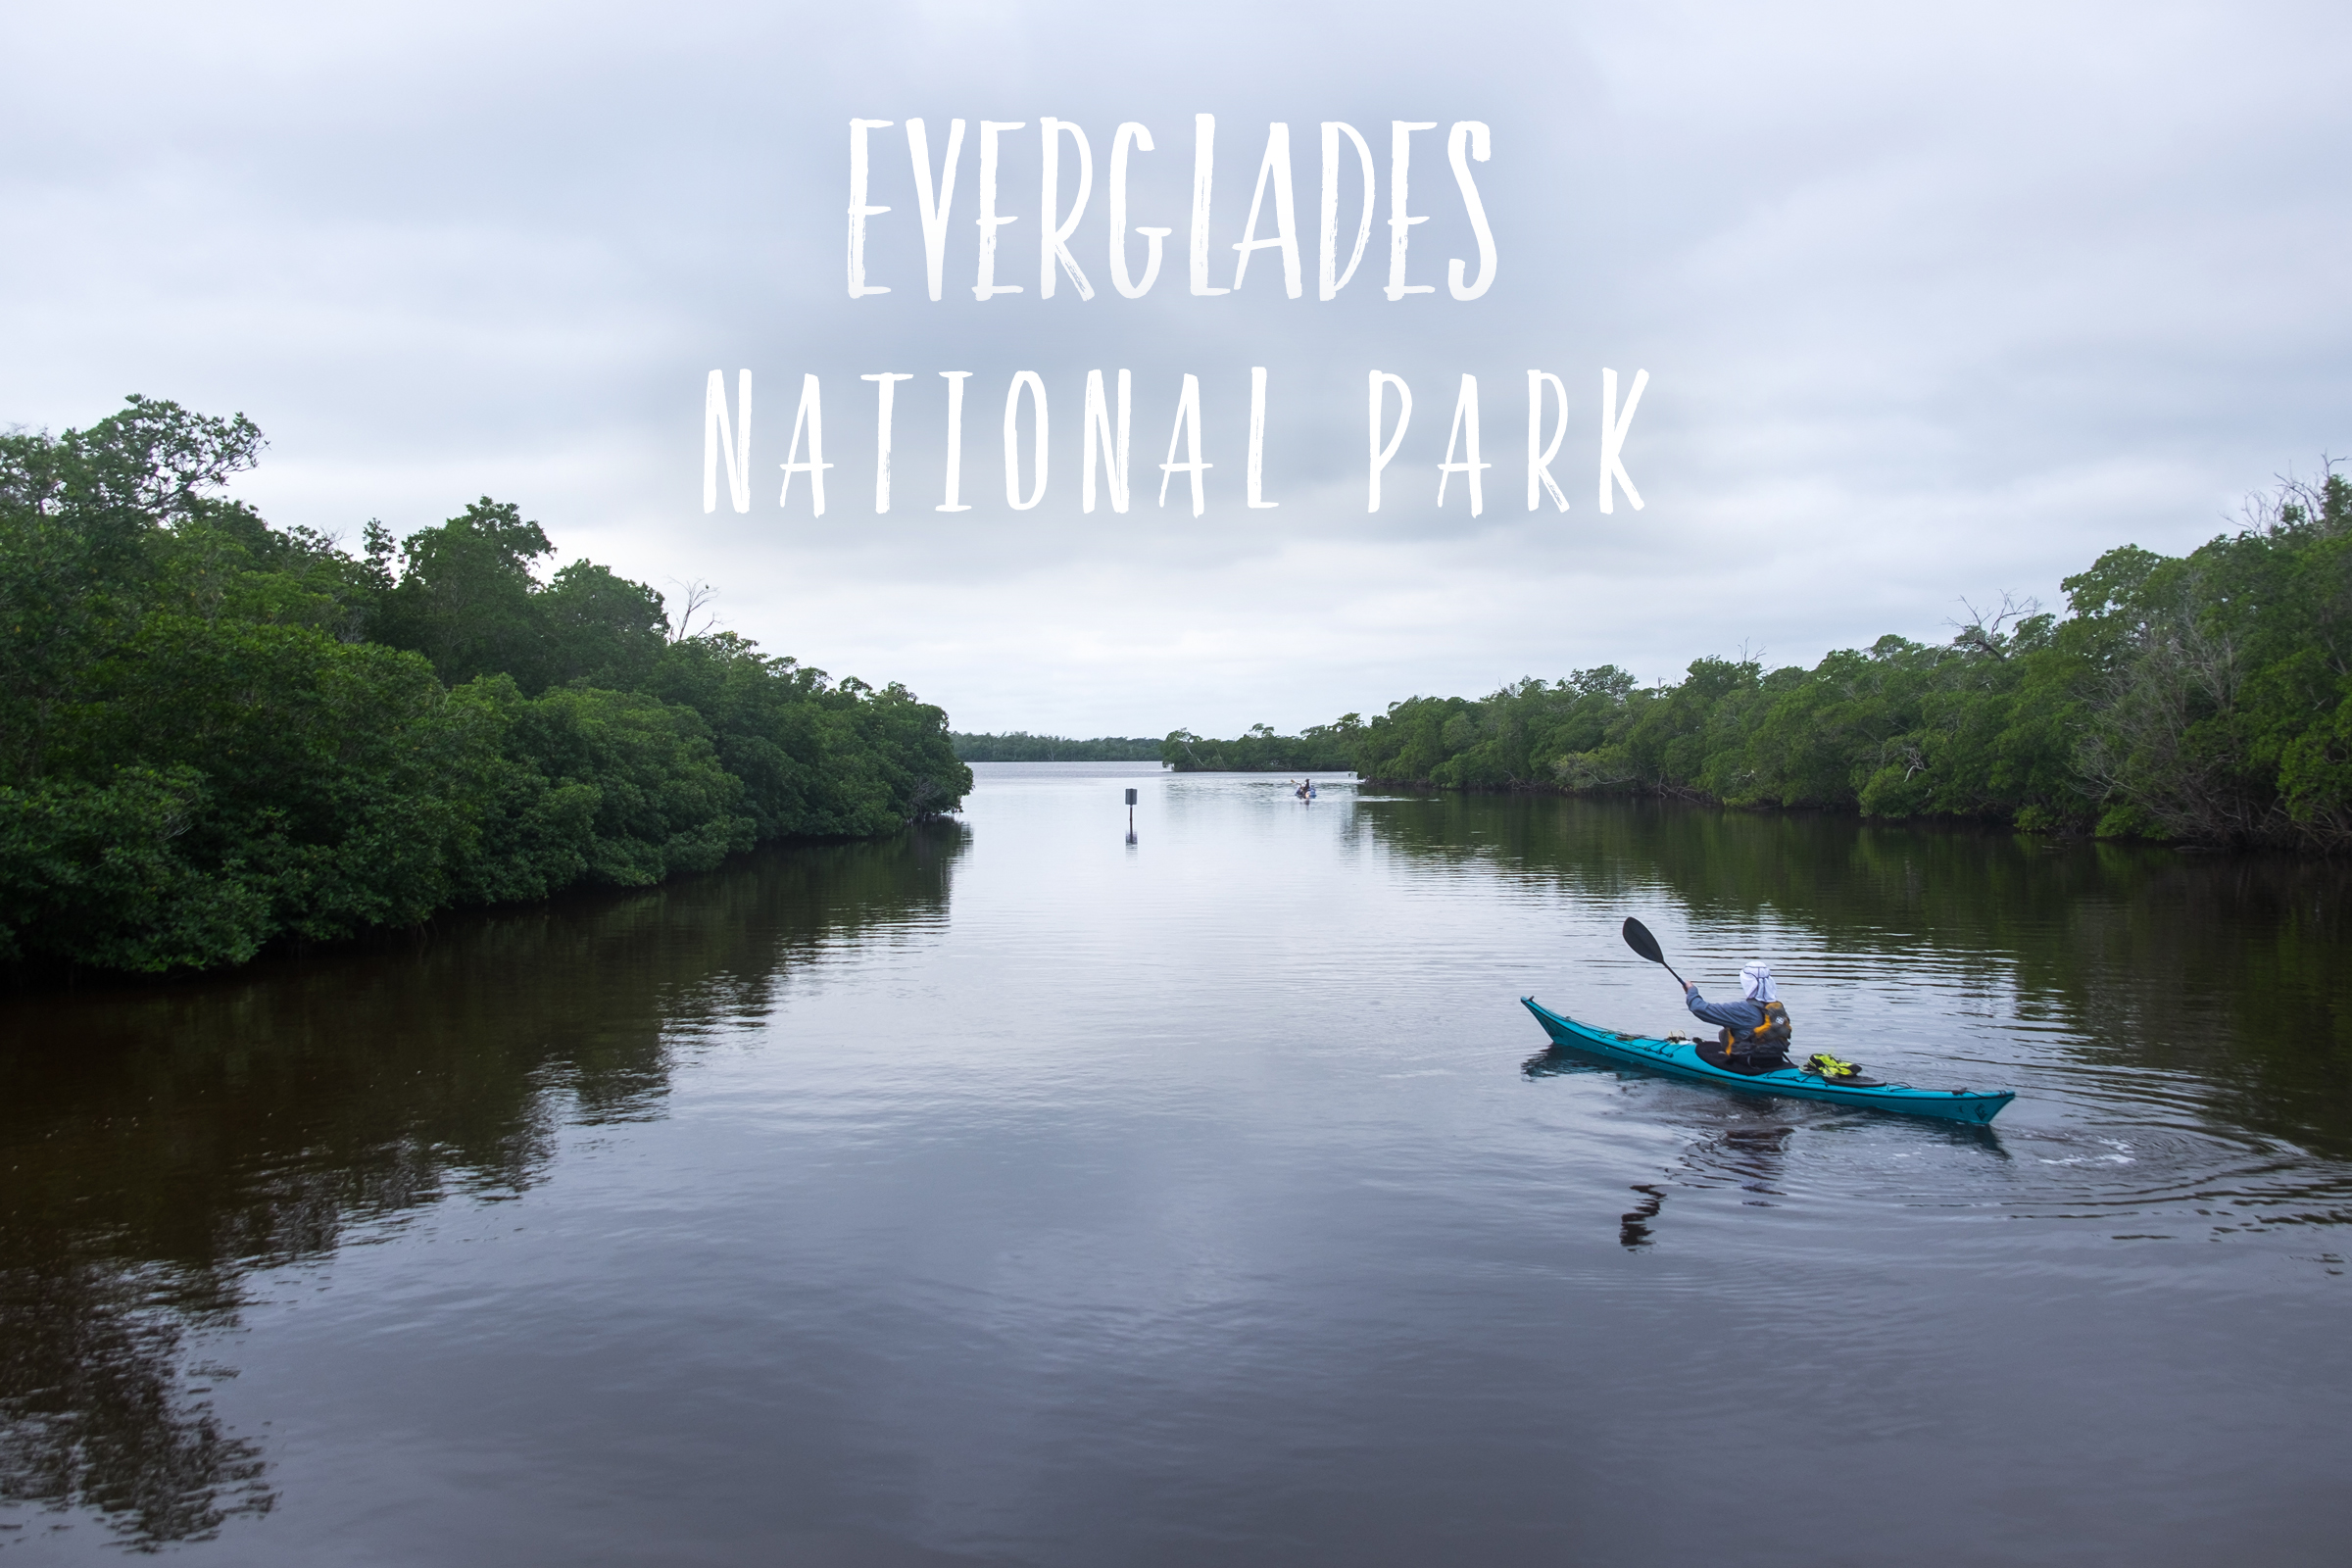 59in52_np-page_everglades.jpg